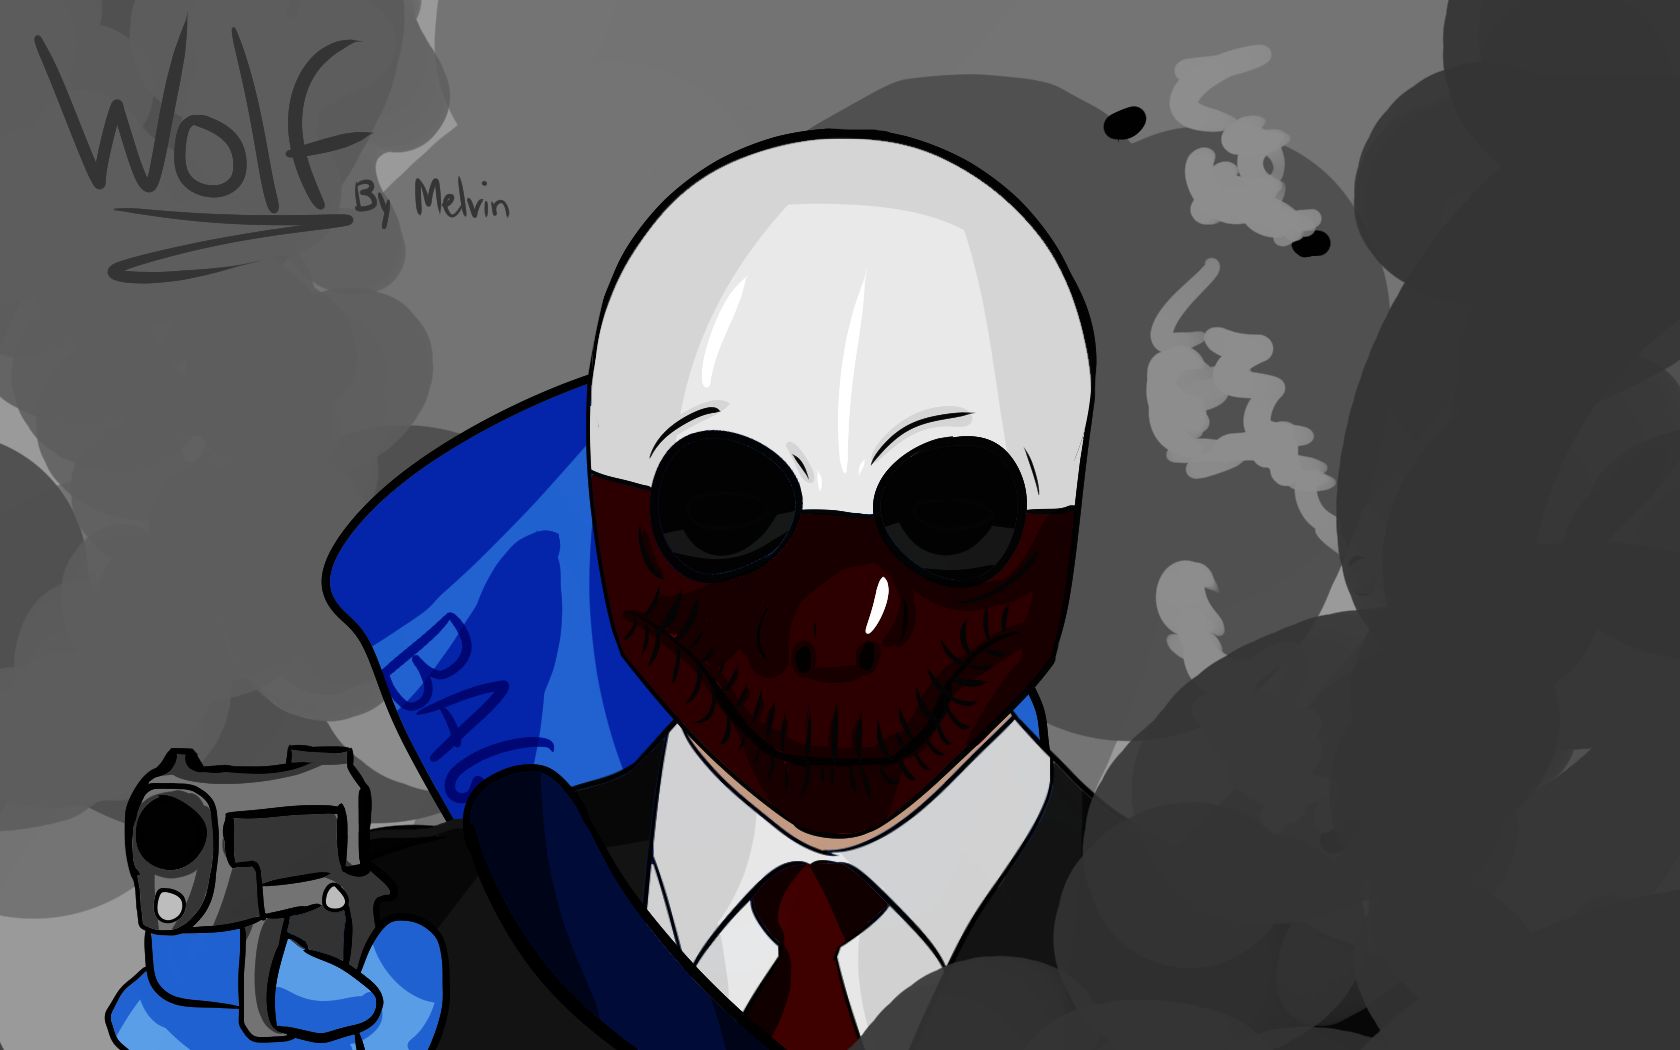 Payday 2 wolfilicious by smokemelvin on deviantart payday 2 wolfilicious by smokemelvin payday 2 wolfilicious by smokemelvin ccuart Choice Image